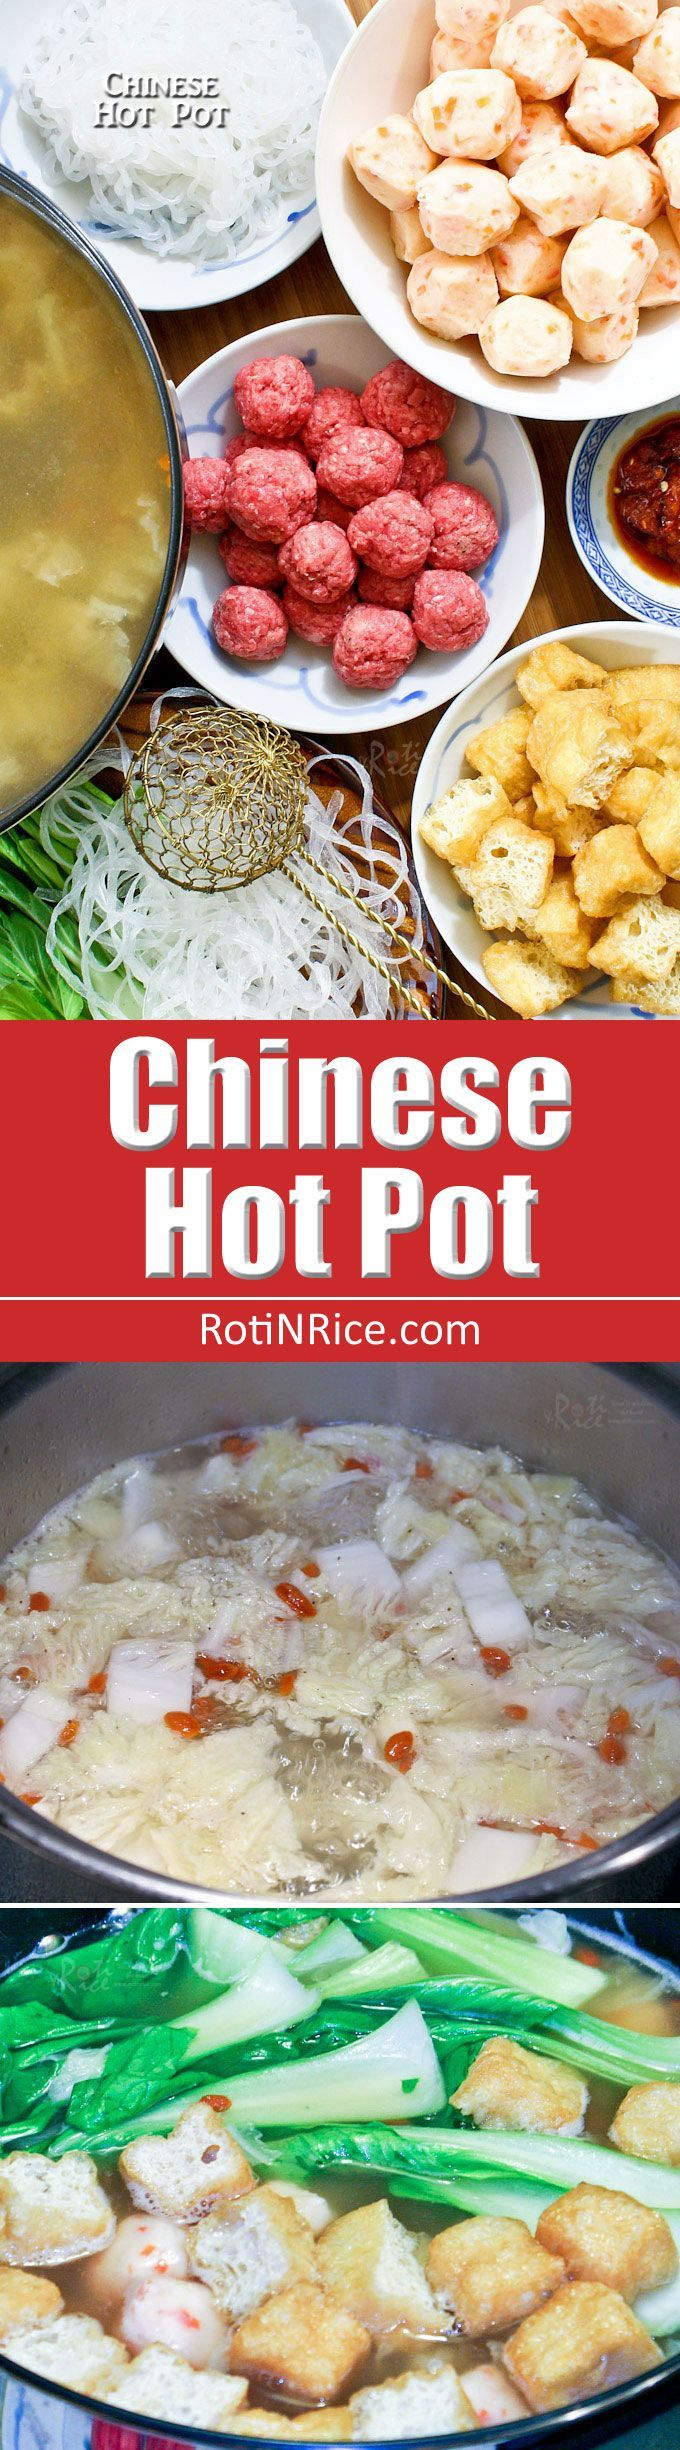 The Chinese Hot Pot meal is perfect for social gatherings. Choice of ingredients…